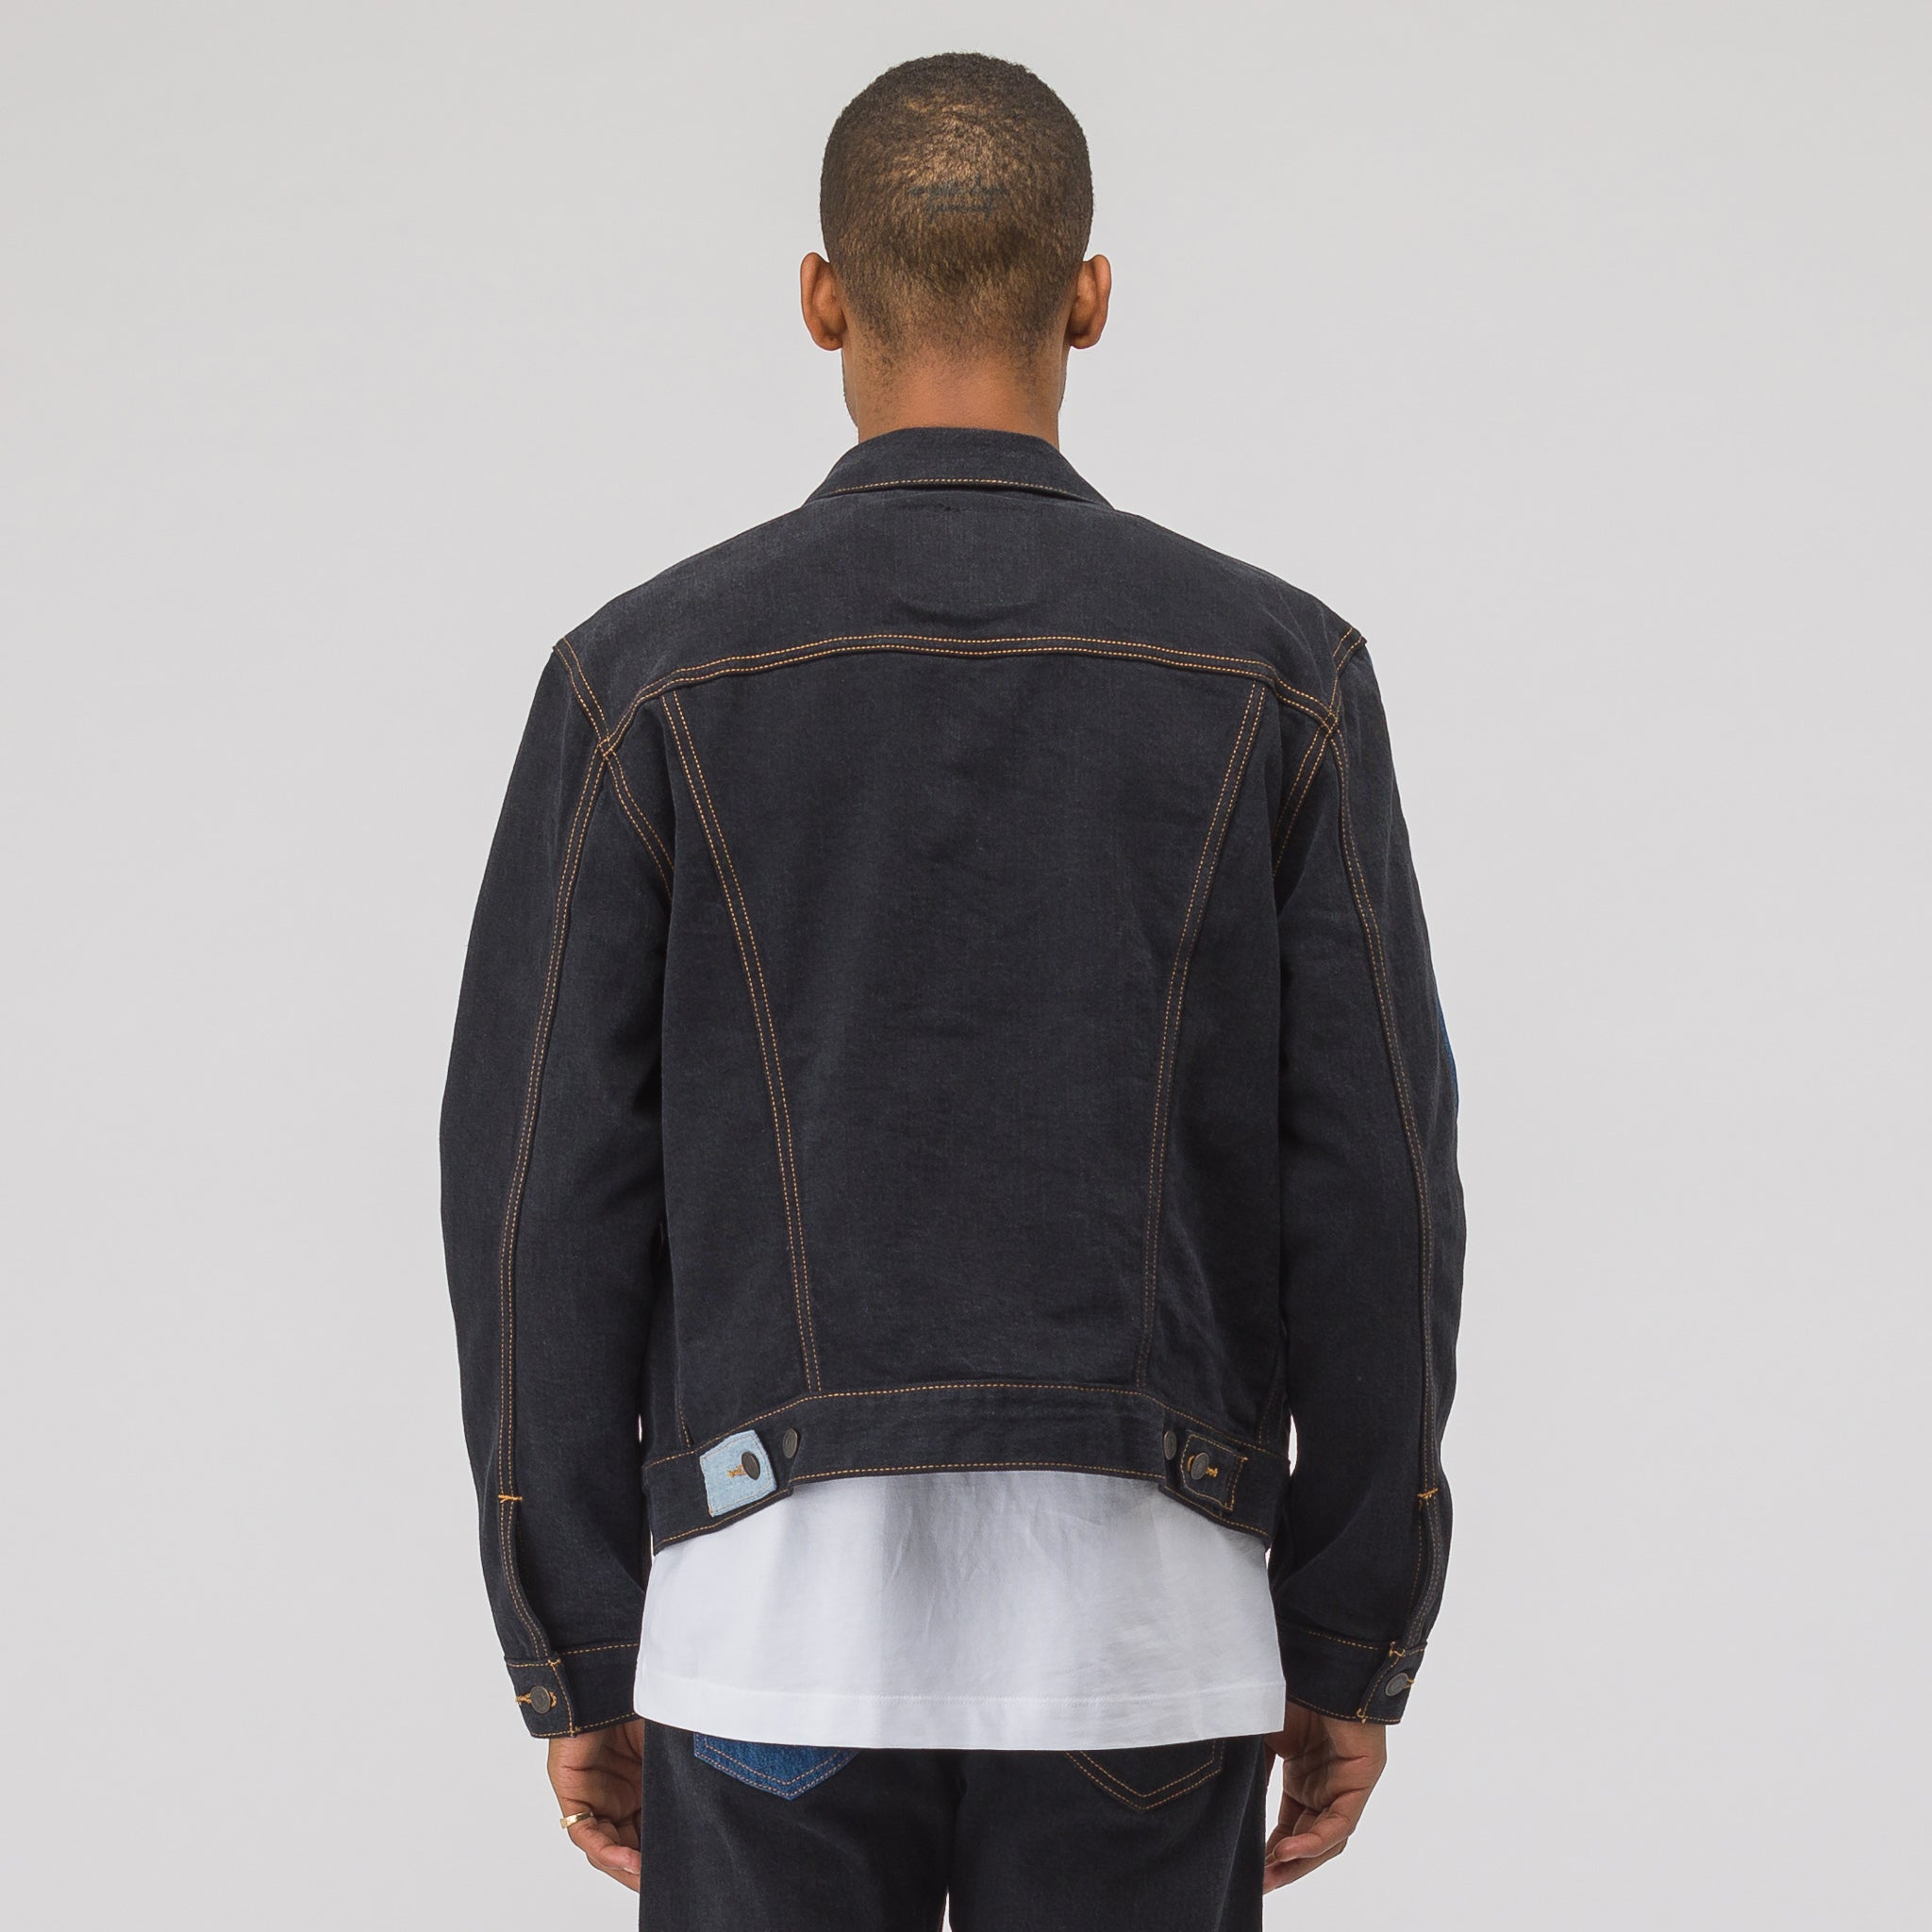 x Levi's Jacket in Black